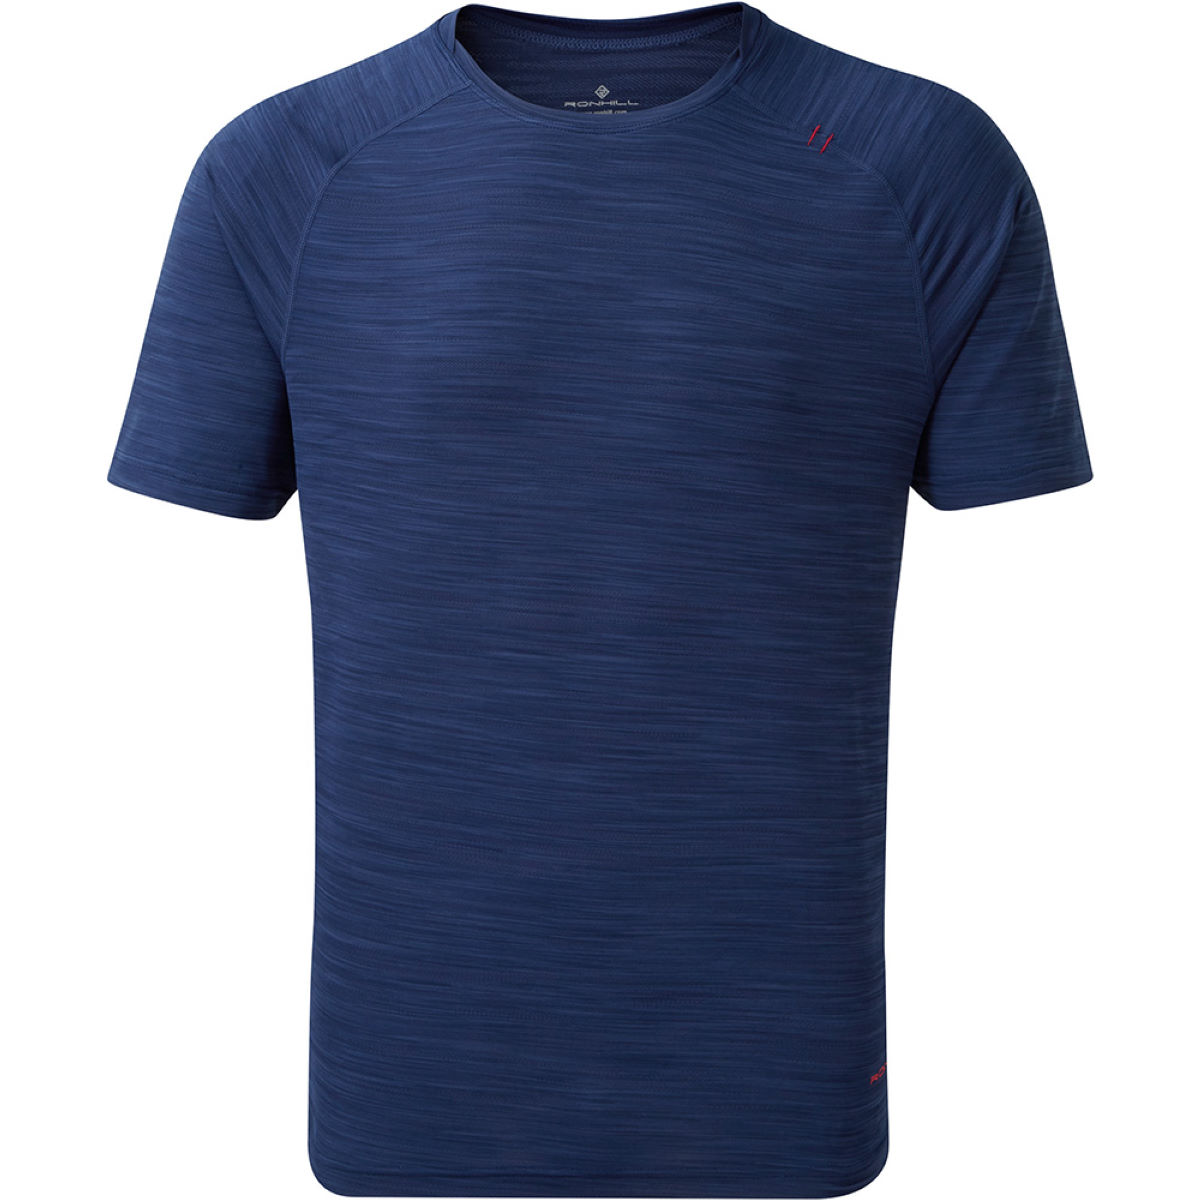 Ronhill Ronhill Infinity Air-Dry Short Sleeve Tee   Short Sleeve Running Tops